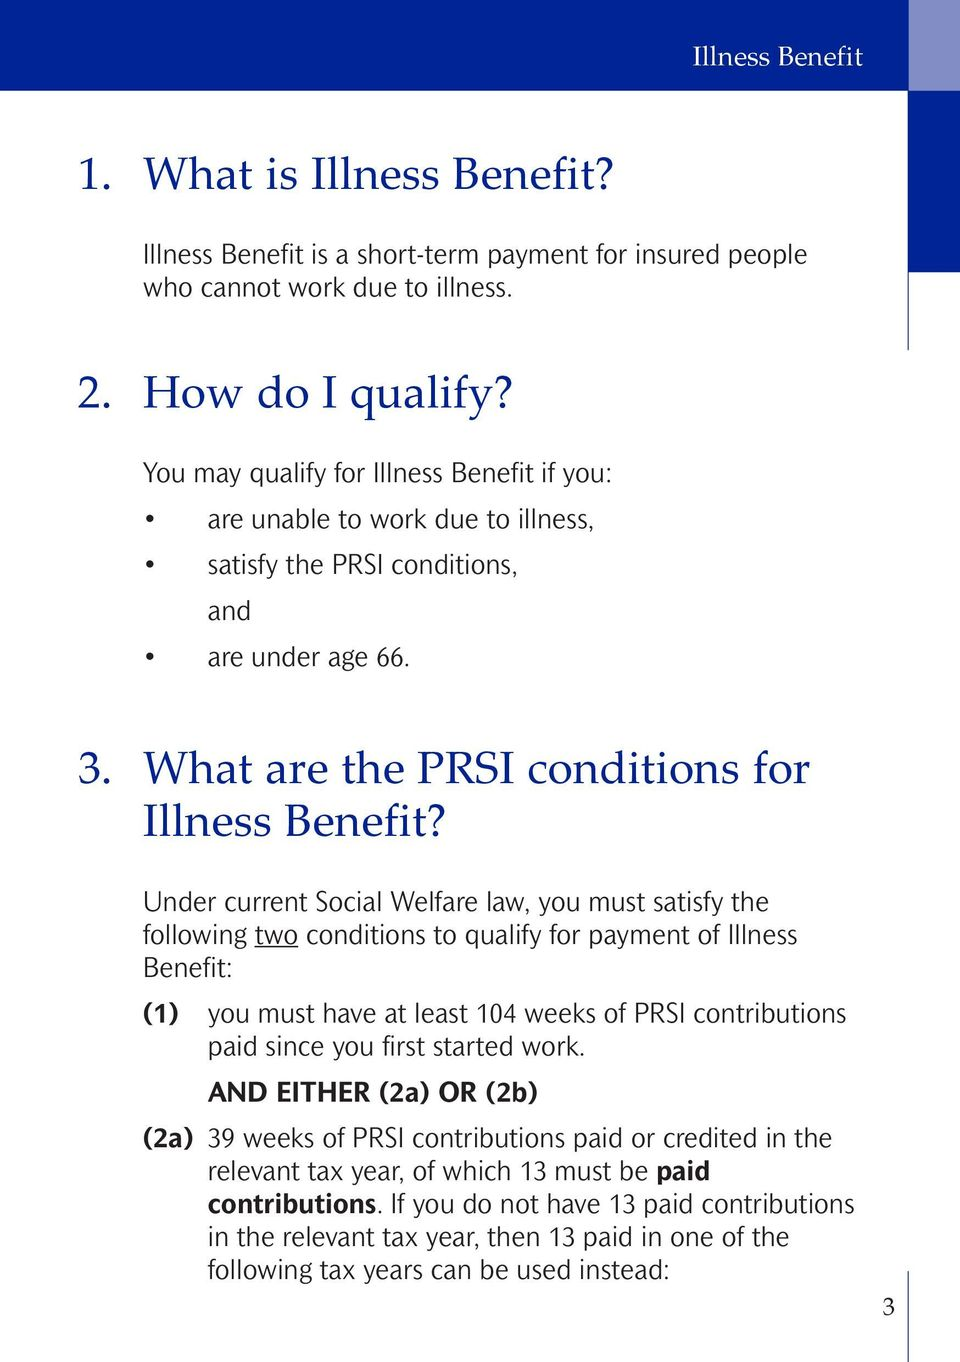 Under current Social Welfare law, you must satisfy the following two conditions to qualify for payment of Illness Benefit: (1) you must have at least 104 weeks of PRSI contributions paid since you